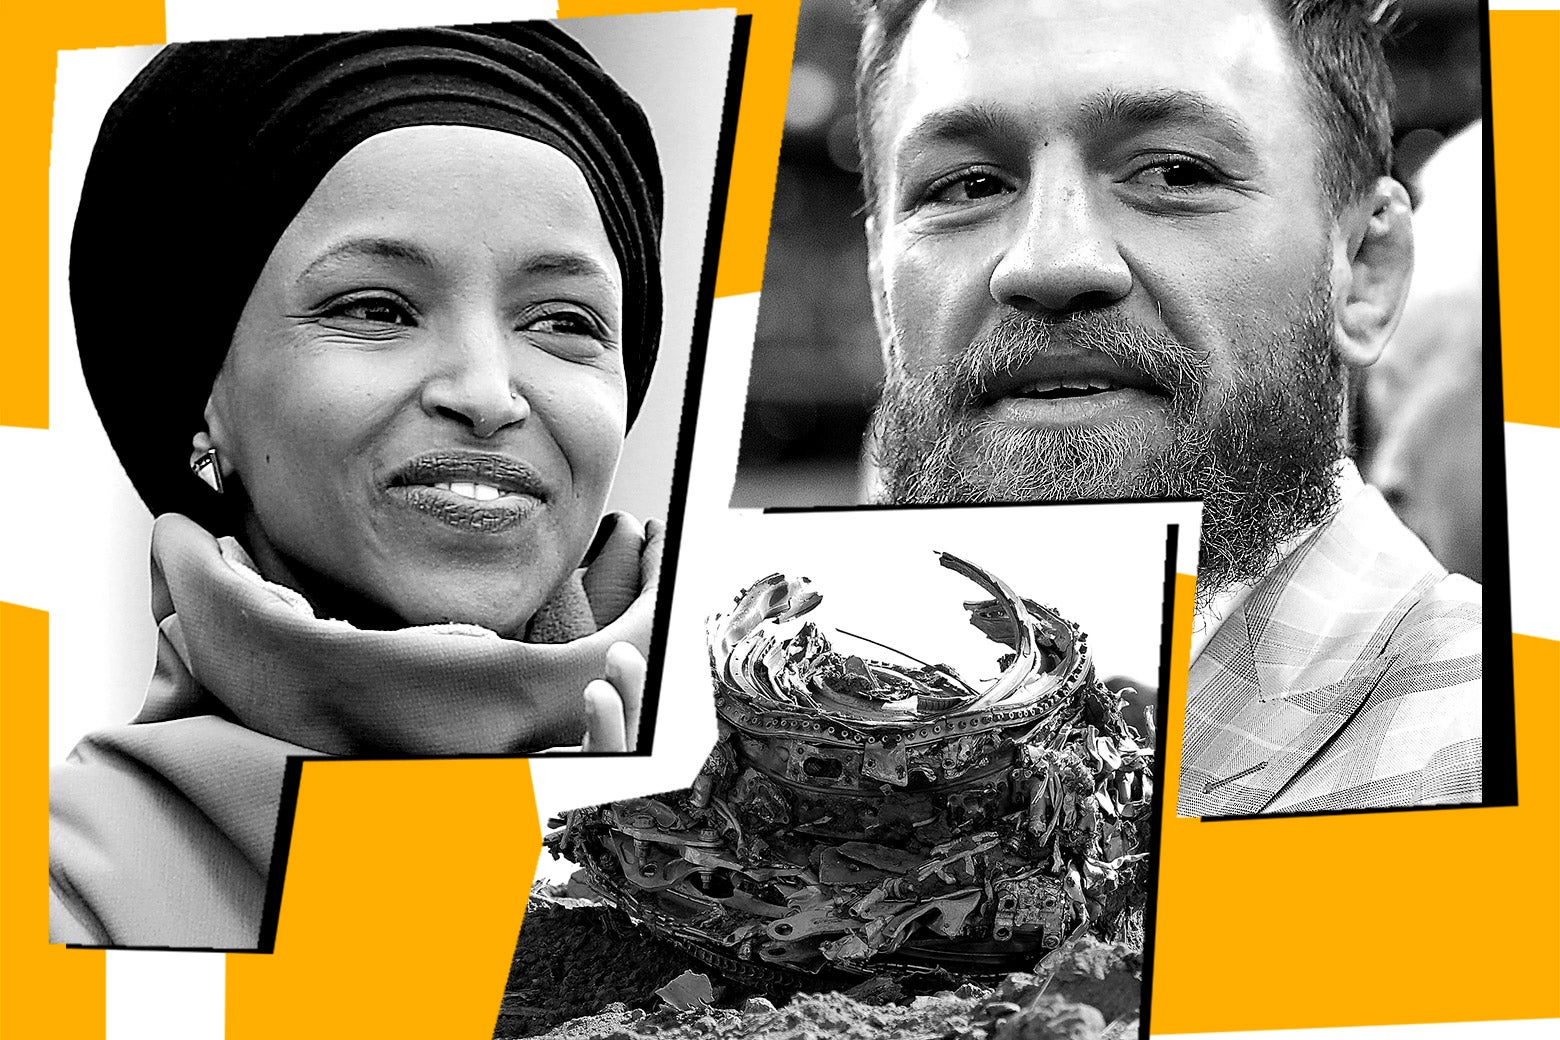 Ilhan Omar, Conor McGregor, and the remains of Ethiopian Airlines Flight 302.